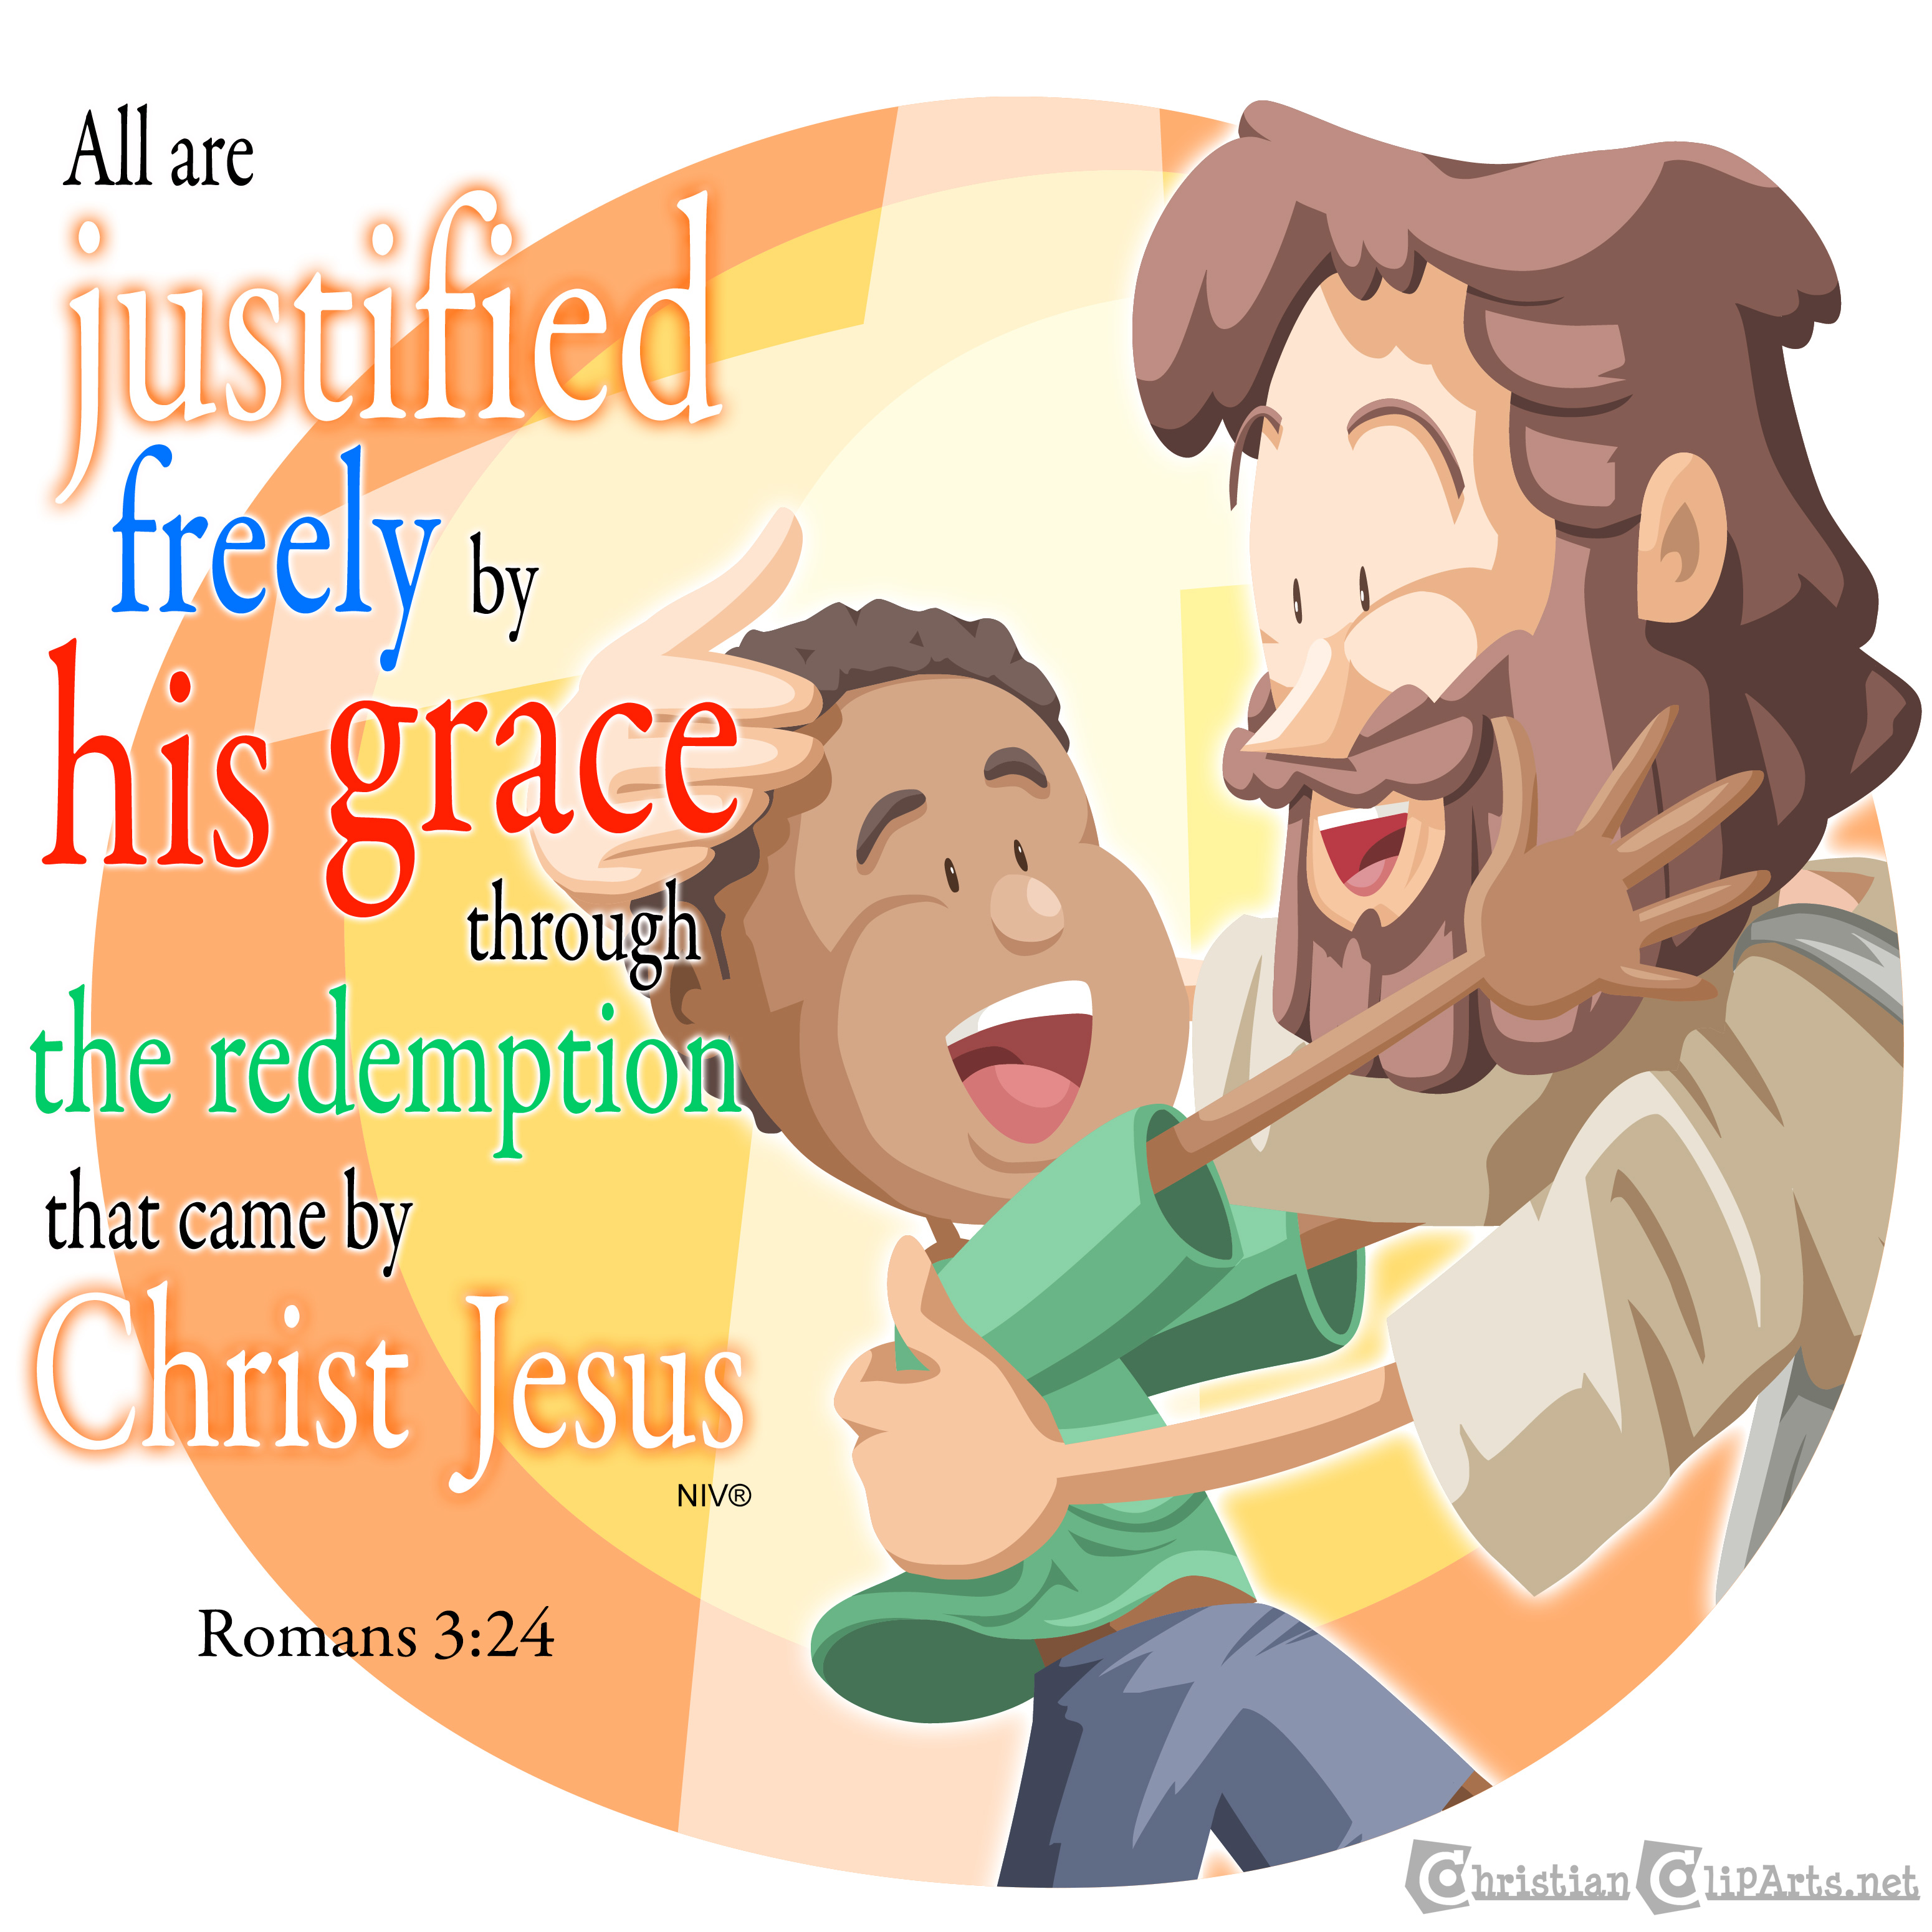 Justified freely by his grace